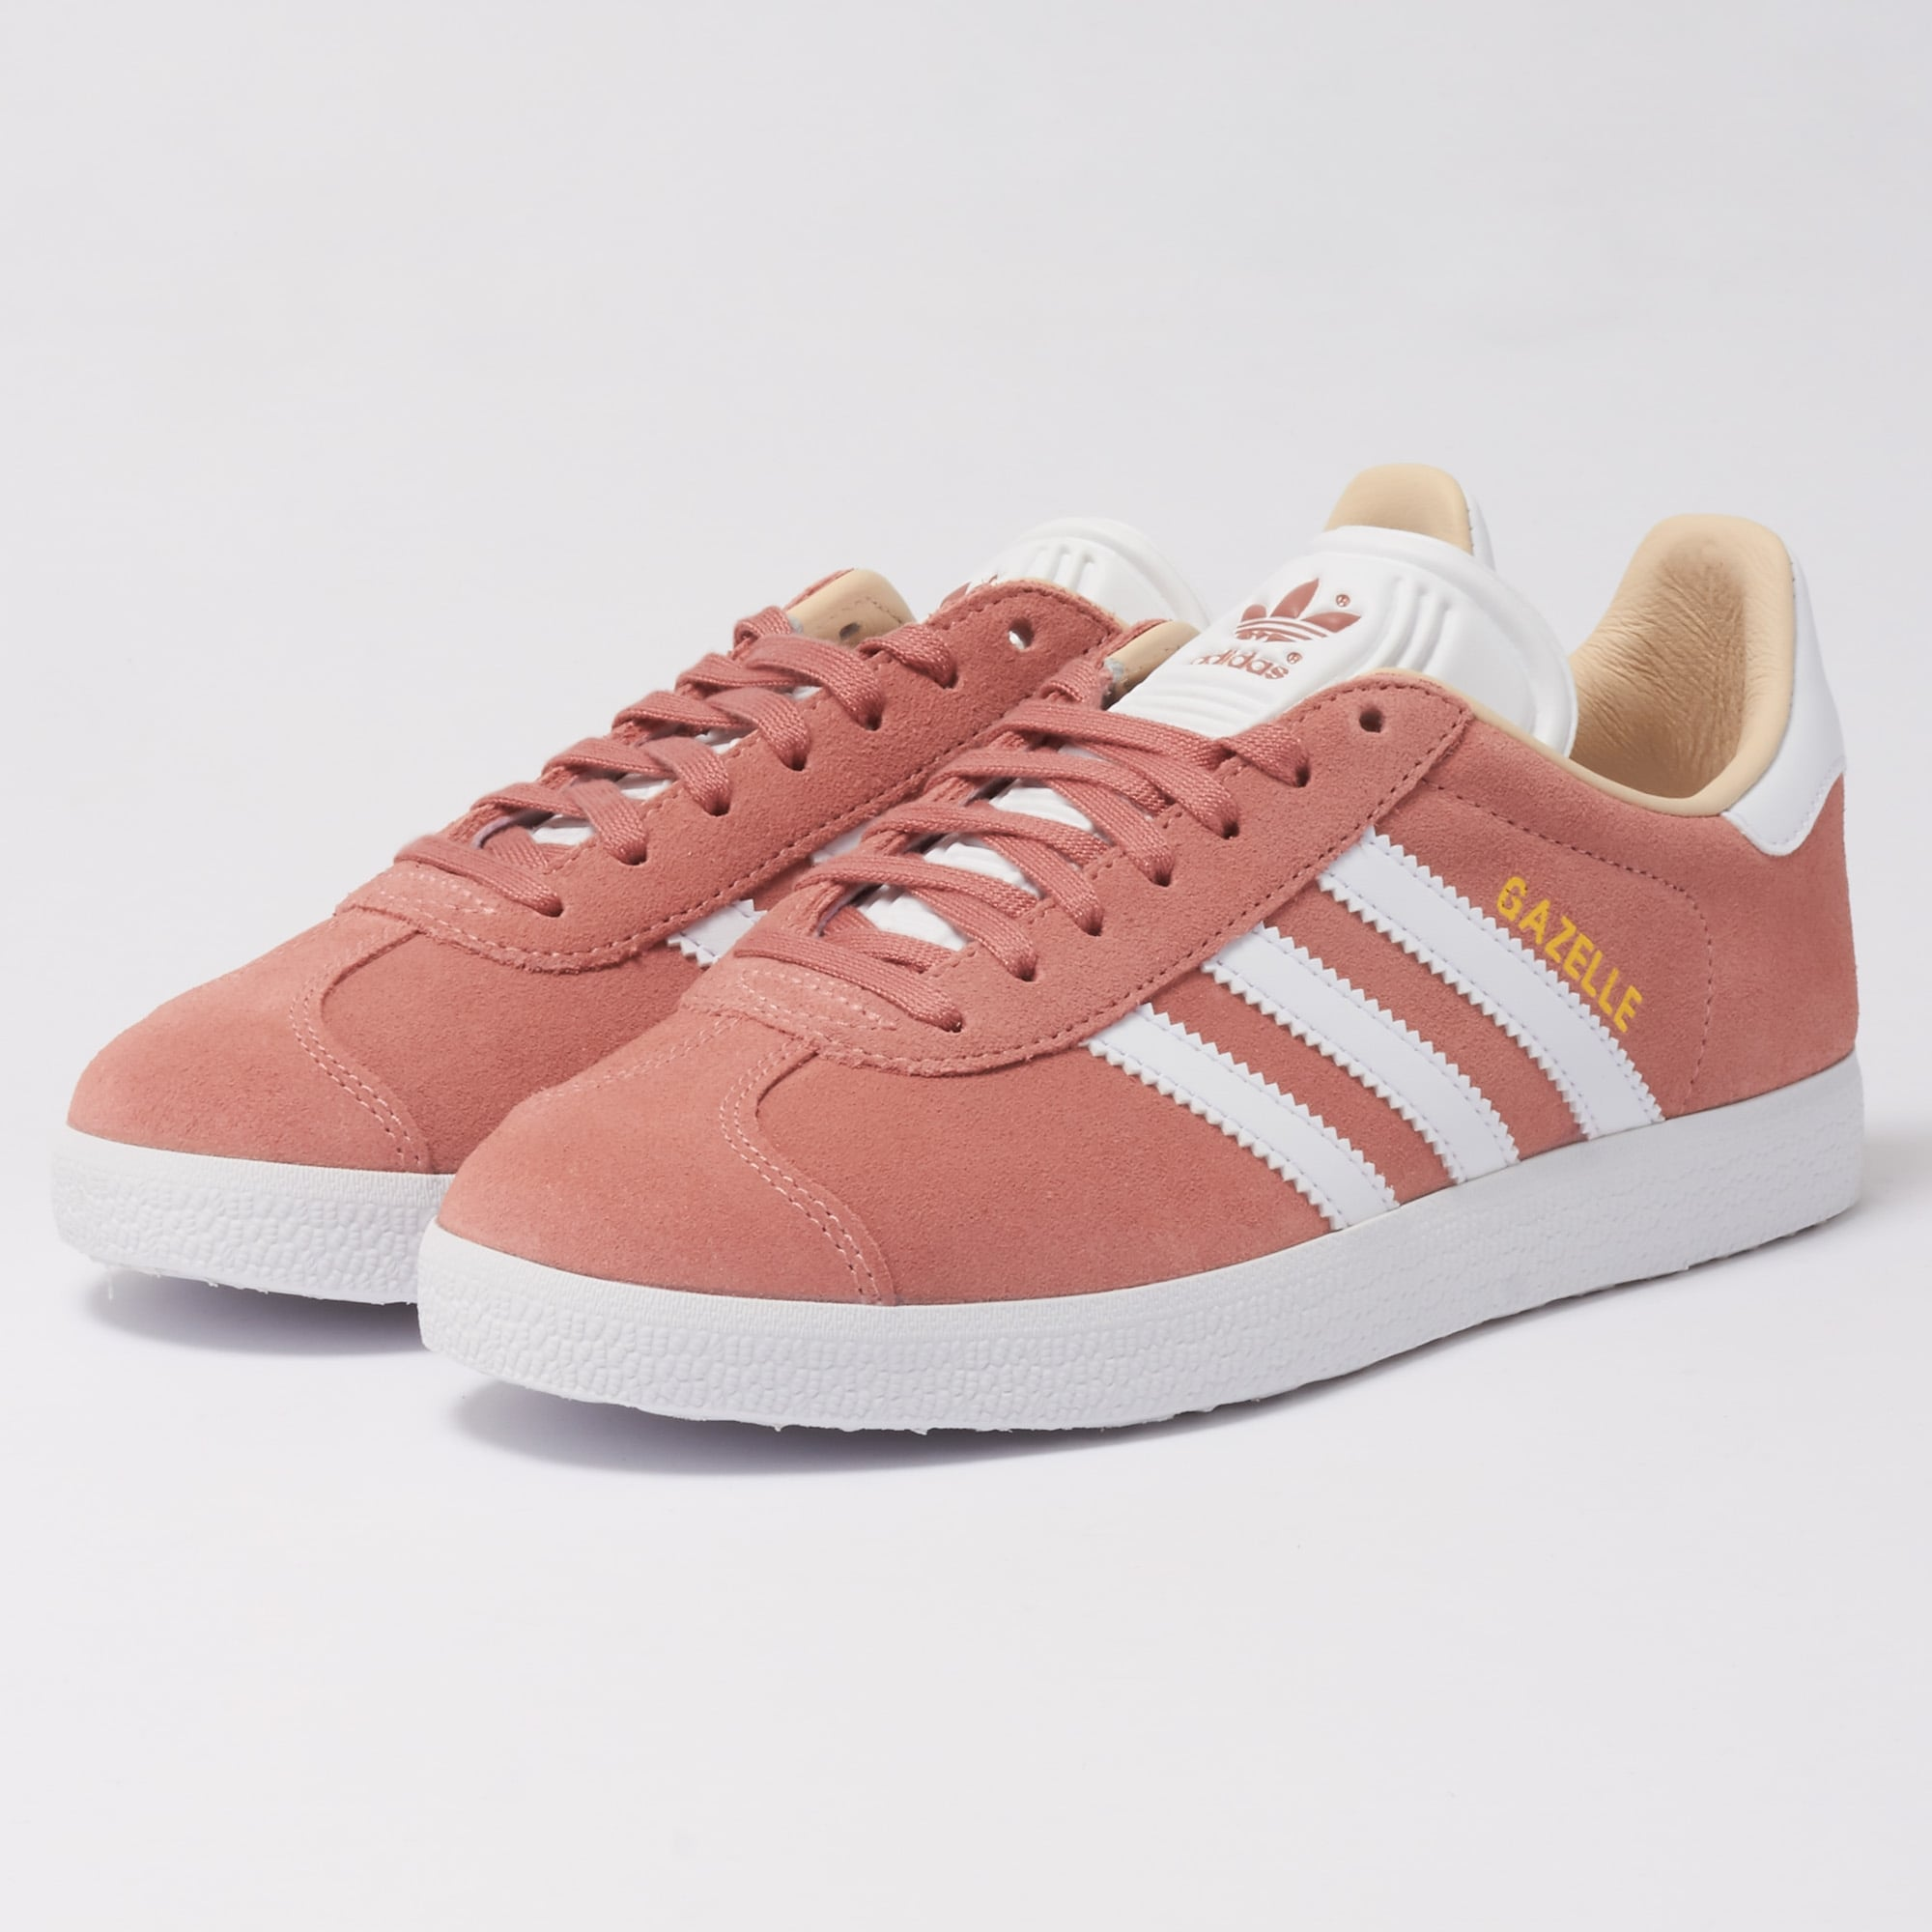 72246de735dd0a Adidas Originals Womens Gazelle Sneakers